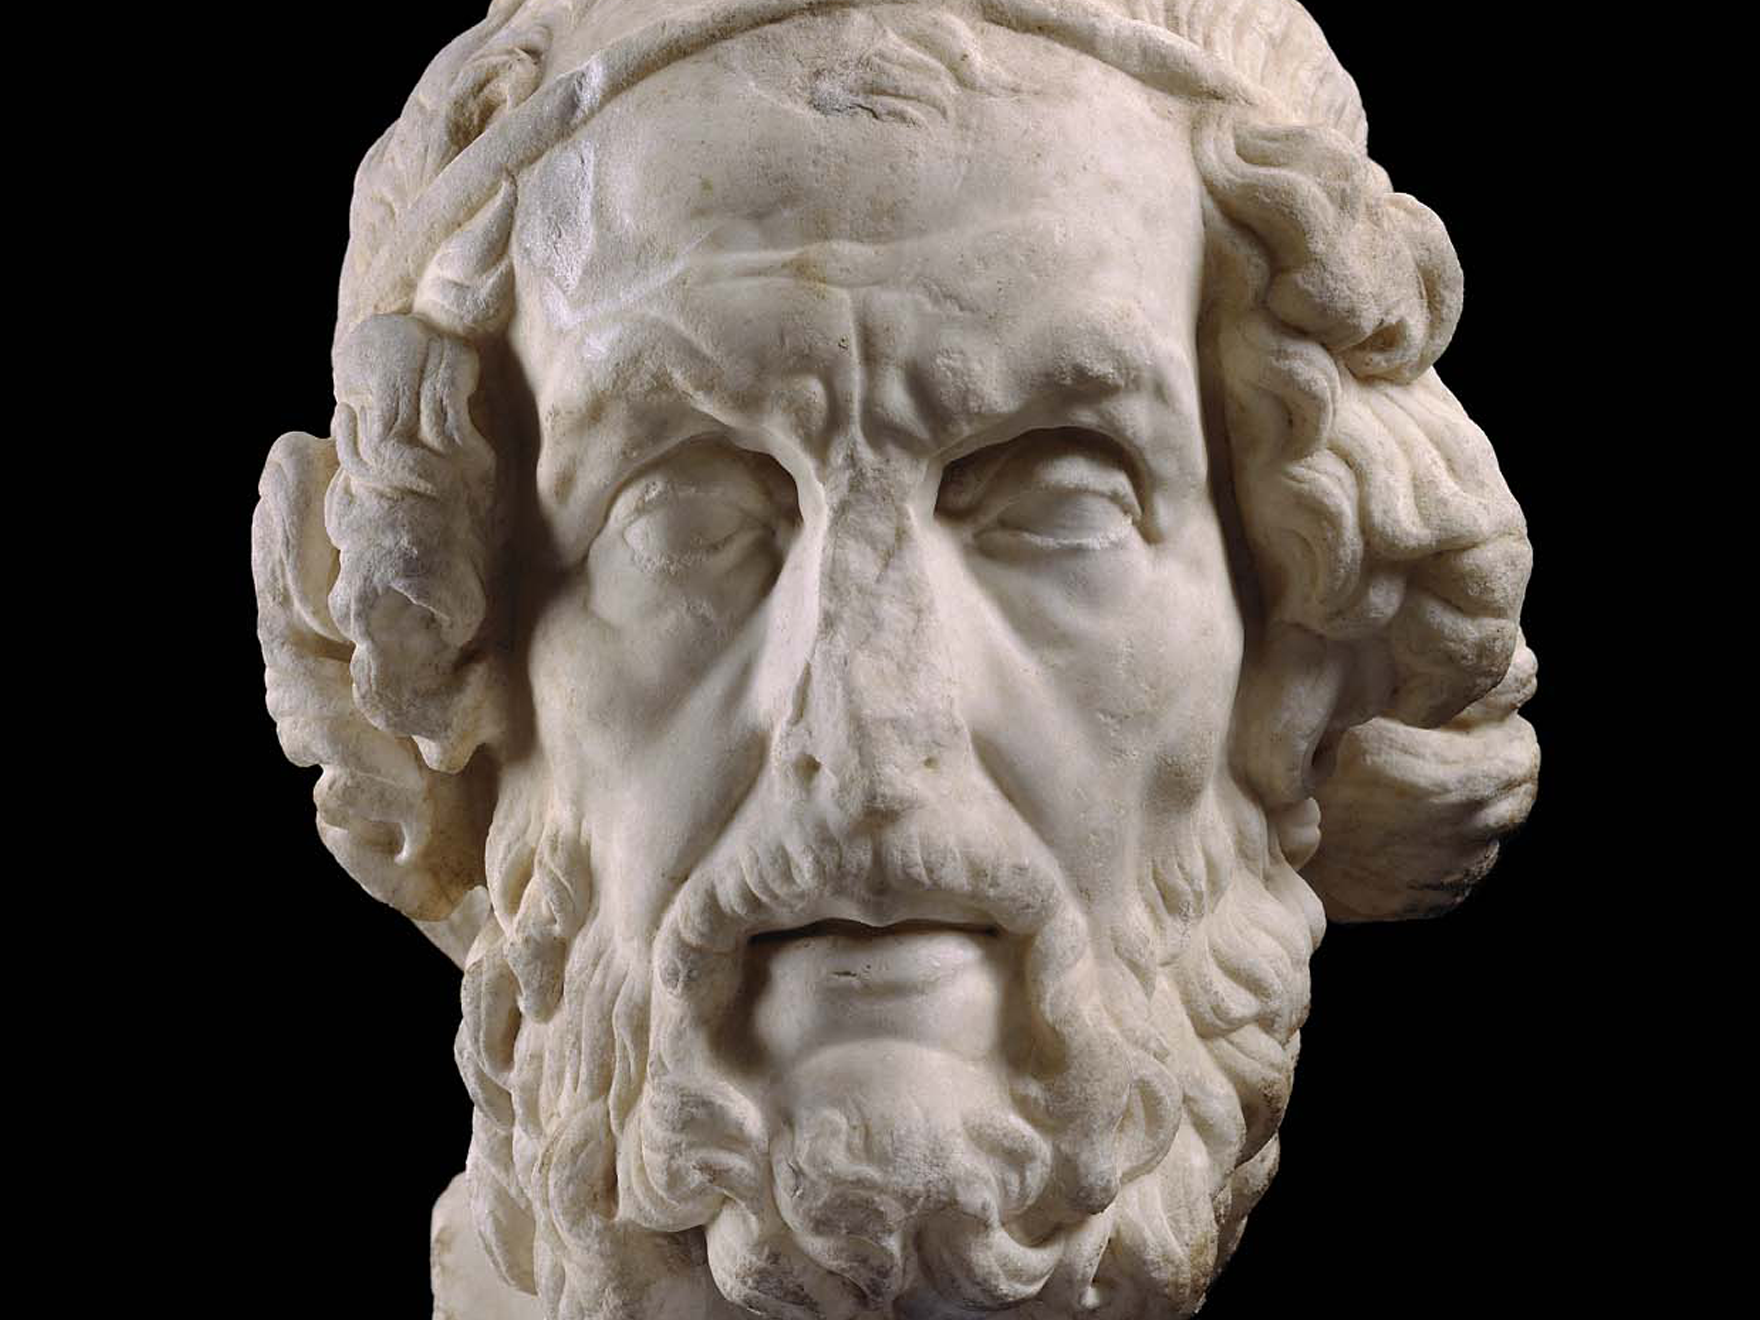 Homer, Roman, Late Republican or Imperial Period, late 1st century BC or 1st century AD